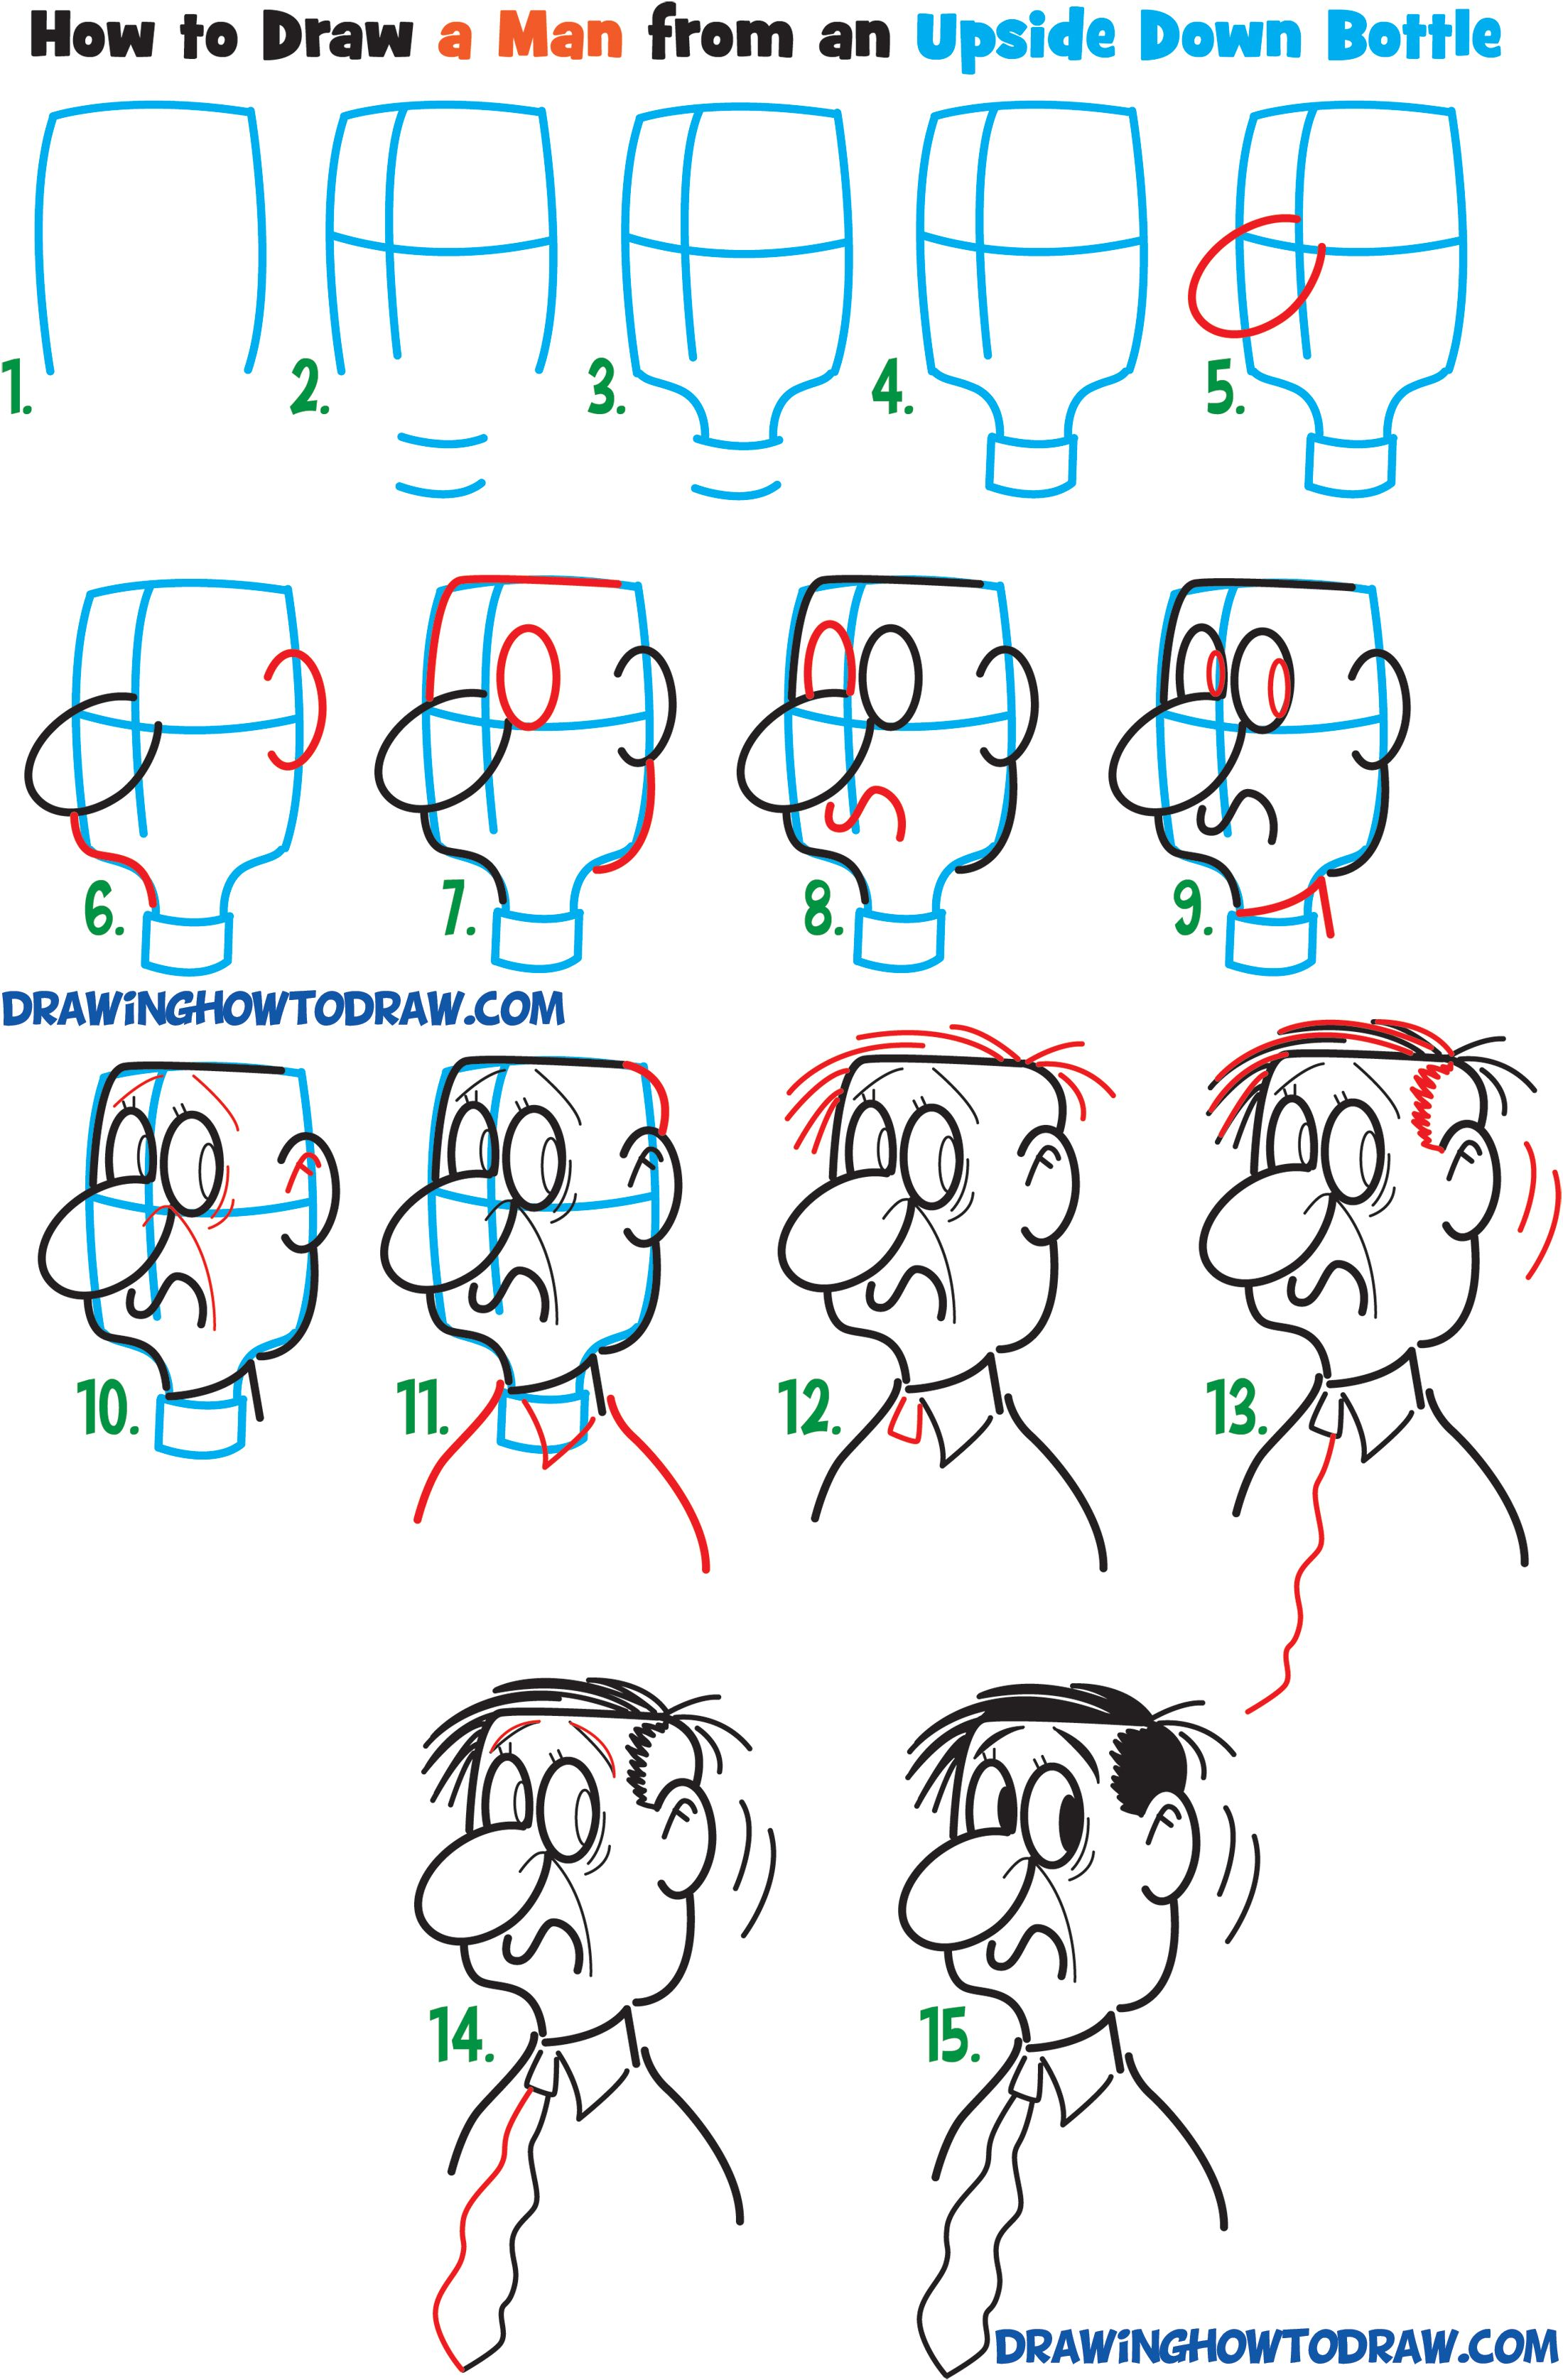 Tutorial 5 draw a cartoon mans face from the side profile view from an upside down bottle